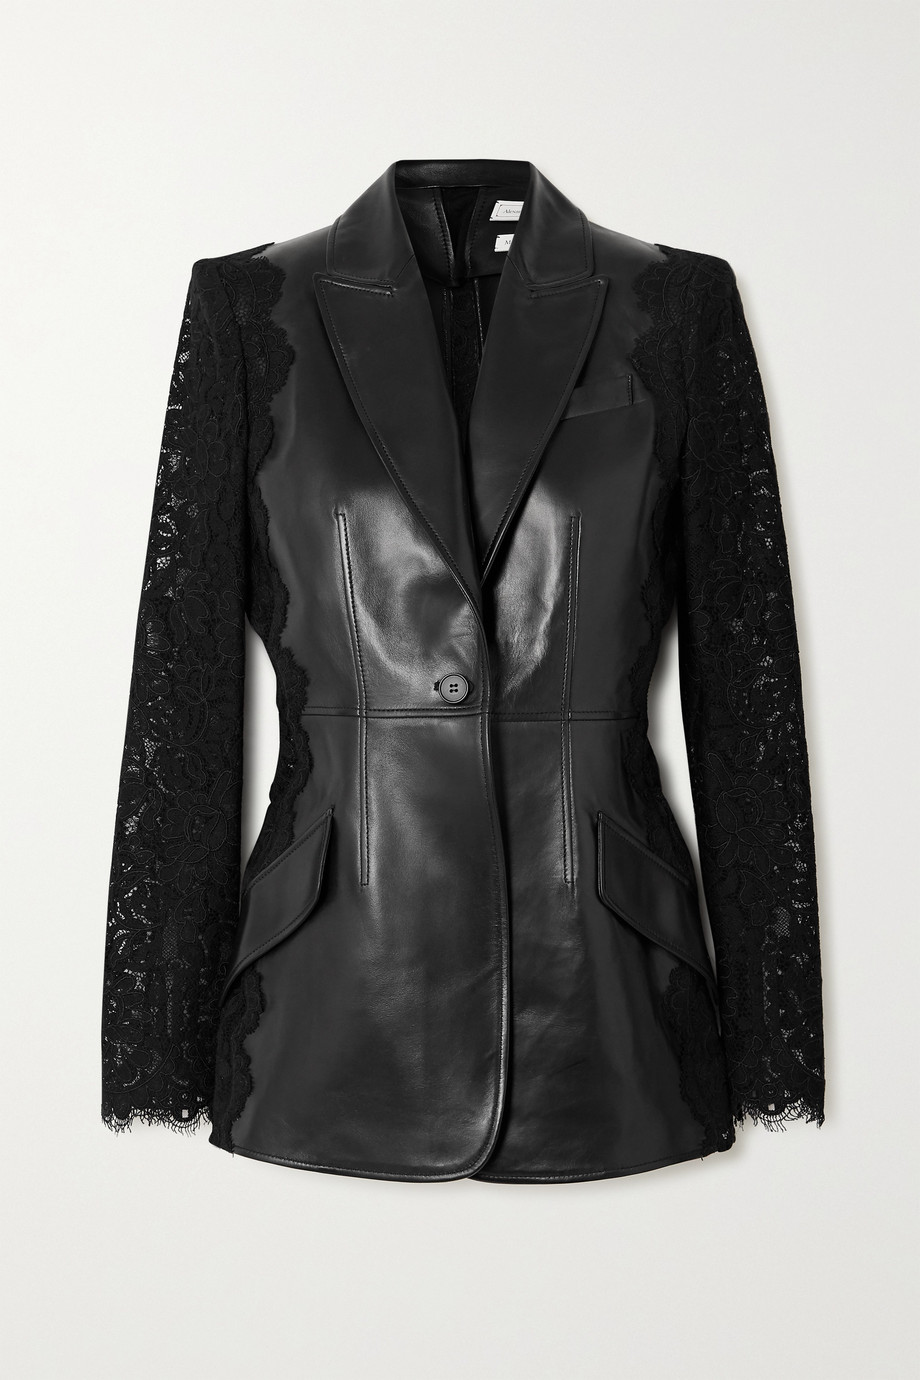 Alexander McQueen Leather and cotton-blend lace blazer